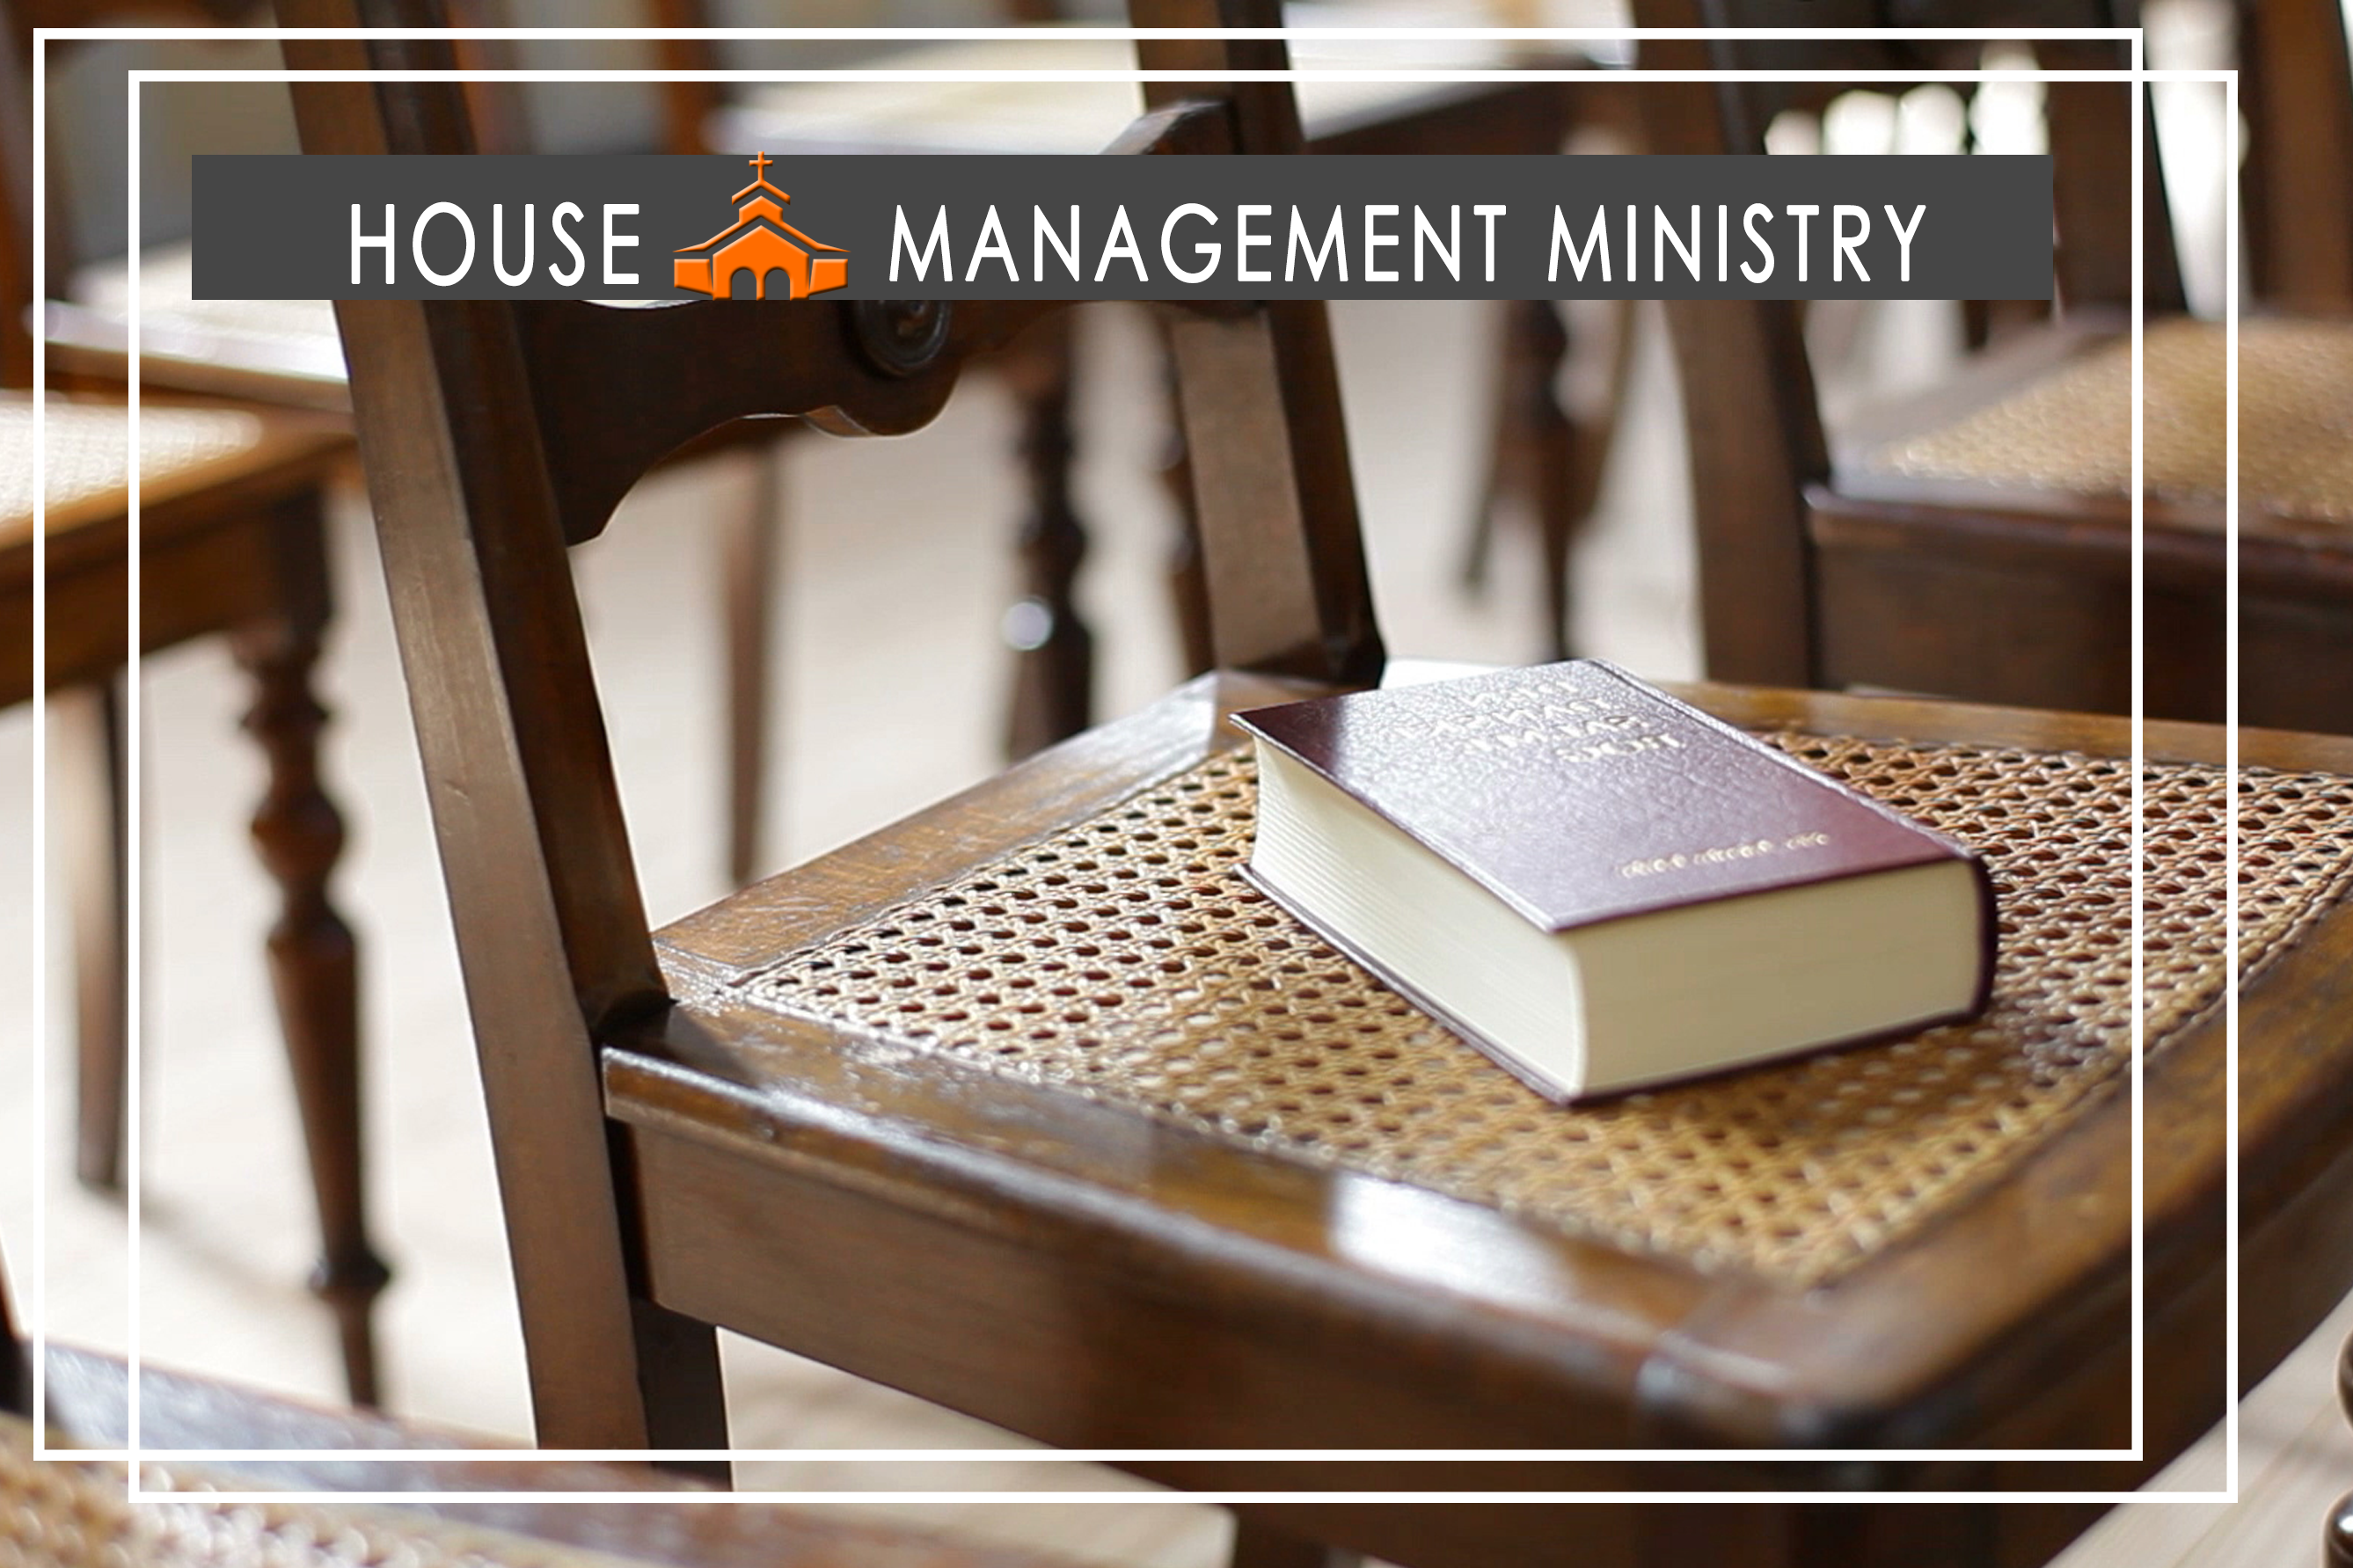 HOUSE MANAGEMENT MINISTRY